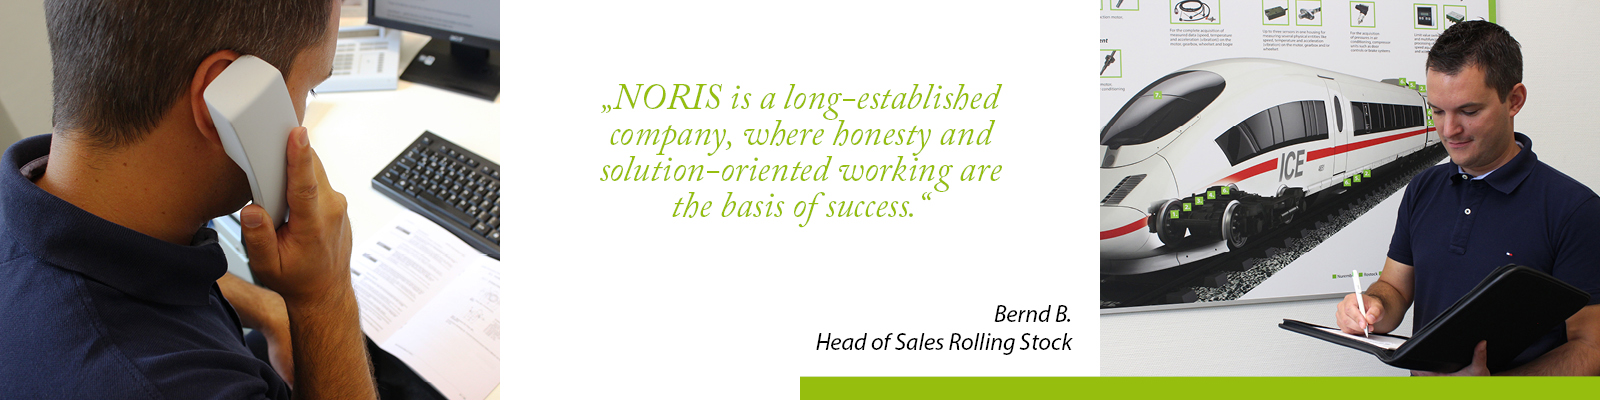 Your Career at NORIS